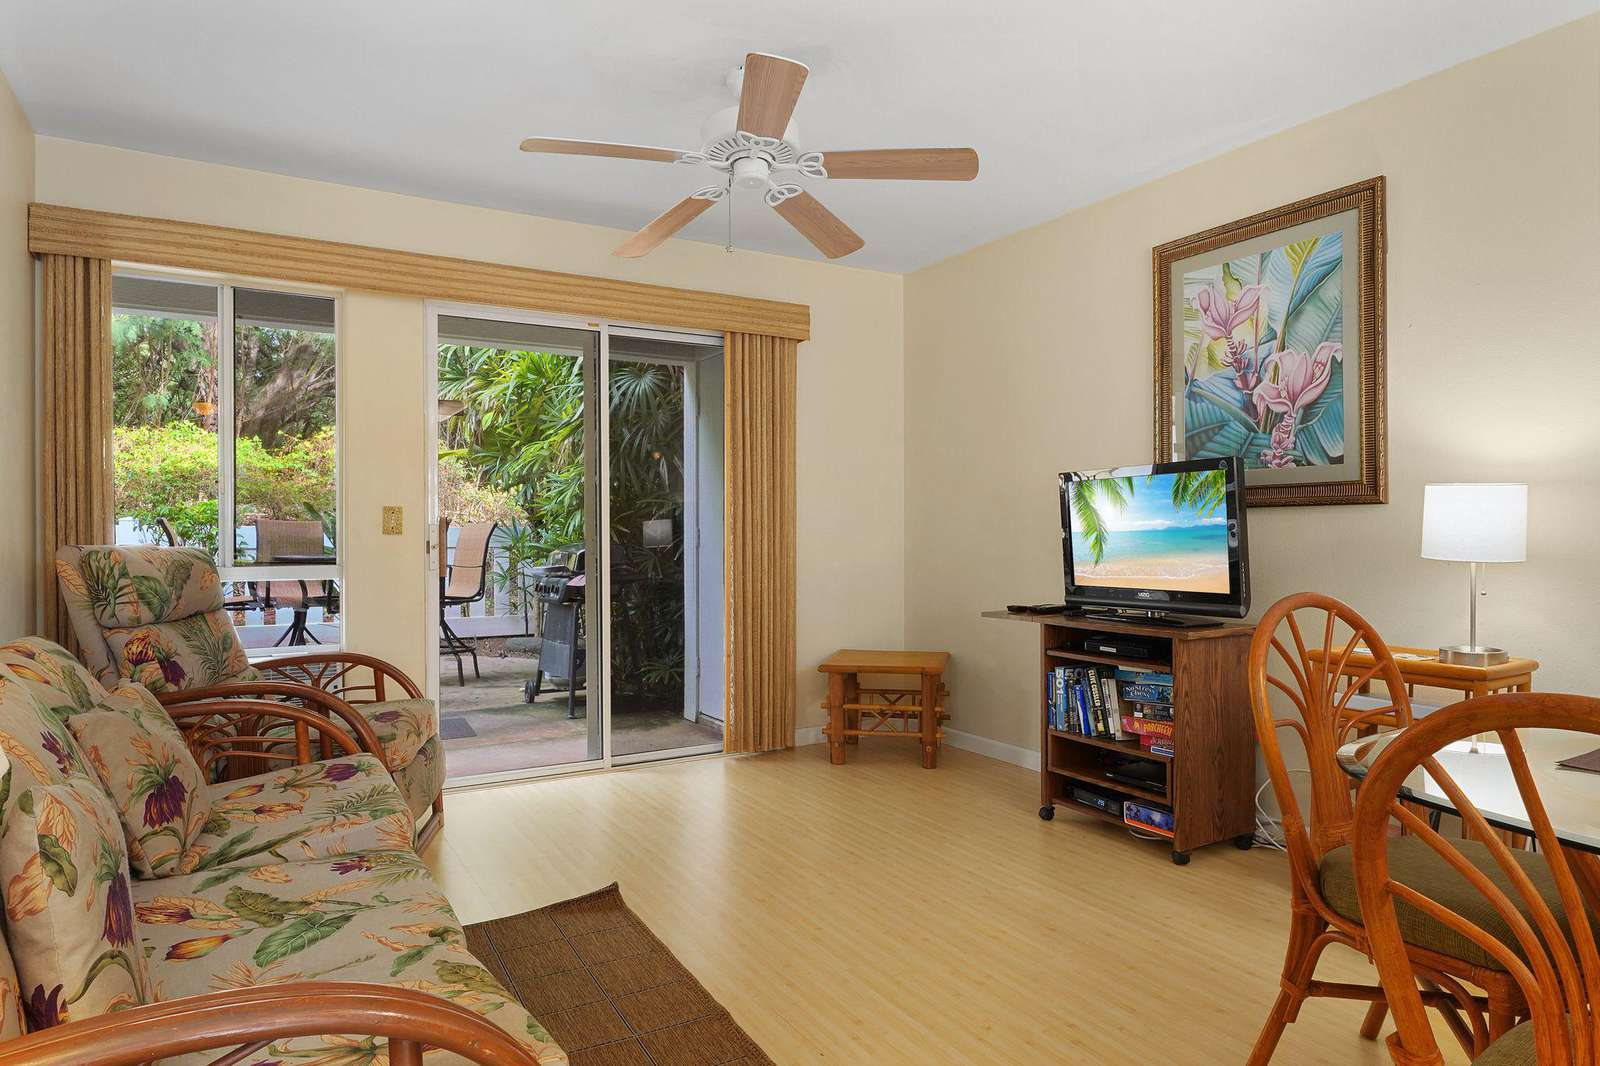 Relax in this ground floor condo located in the far back of the community with a huge 'green space' behind.